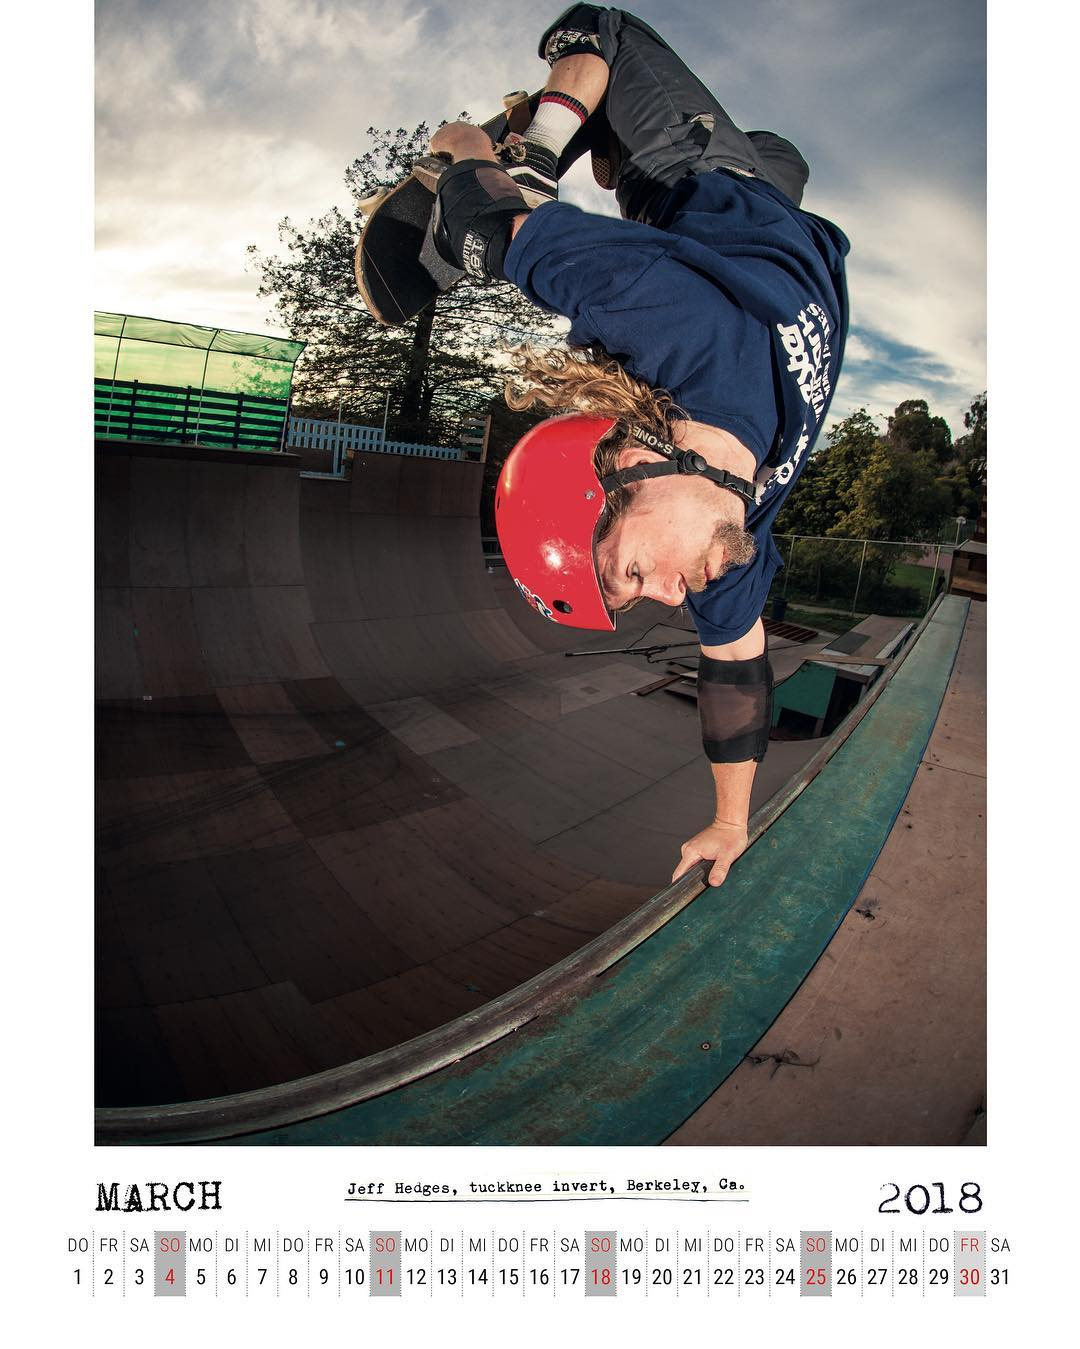 March 1st, time to get your Bailgun calendar spread with Jeff Hedges fully flapping a tuckknee invert like it's 1988. Yeah! High Res Download at Bailgun.com #skateboarding #vert #halfpipe #ramp #verkeley #ffej #handplant #invert #bailgun #magazine #calendar #gerdriegerphotography